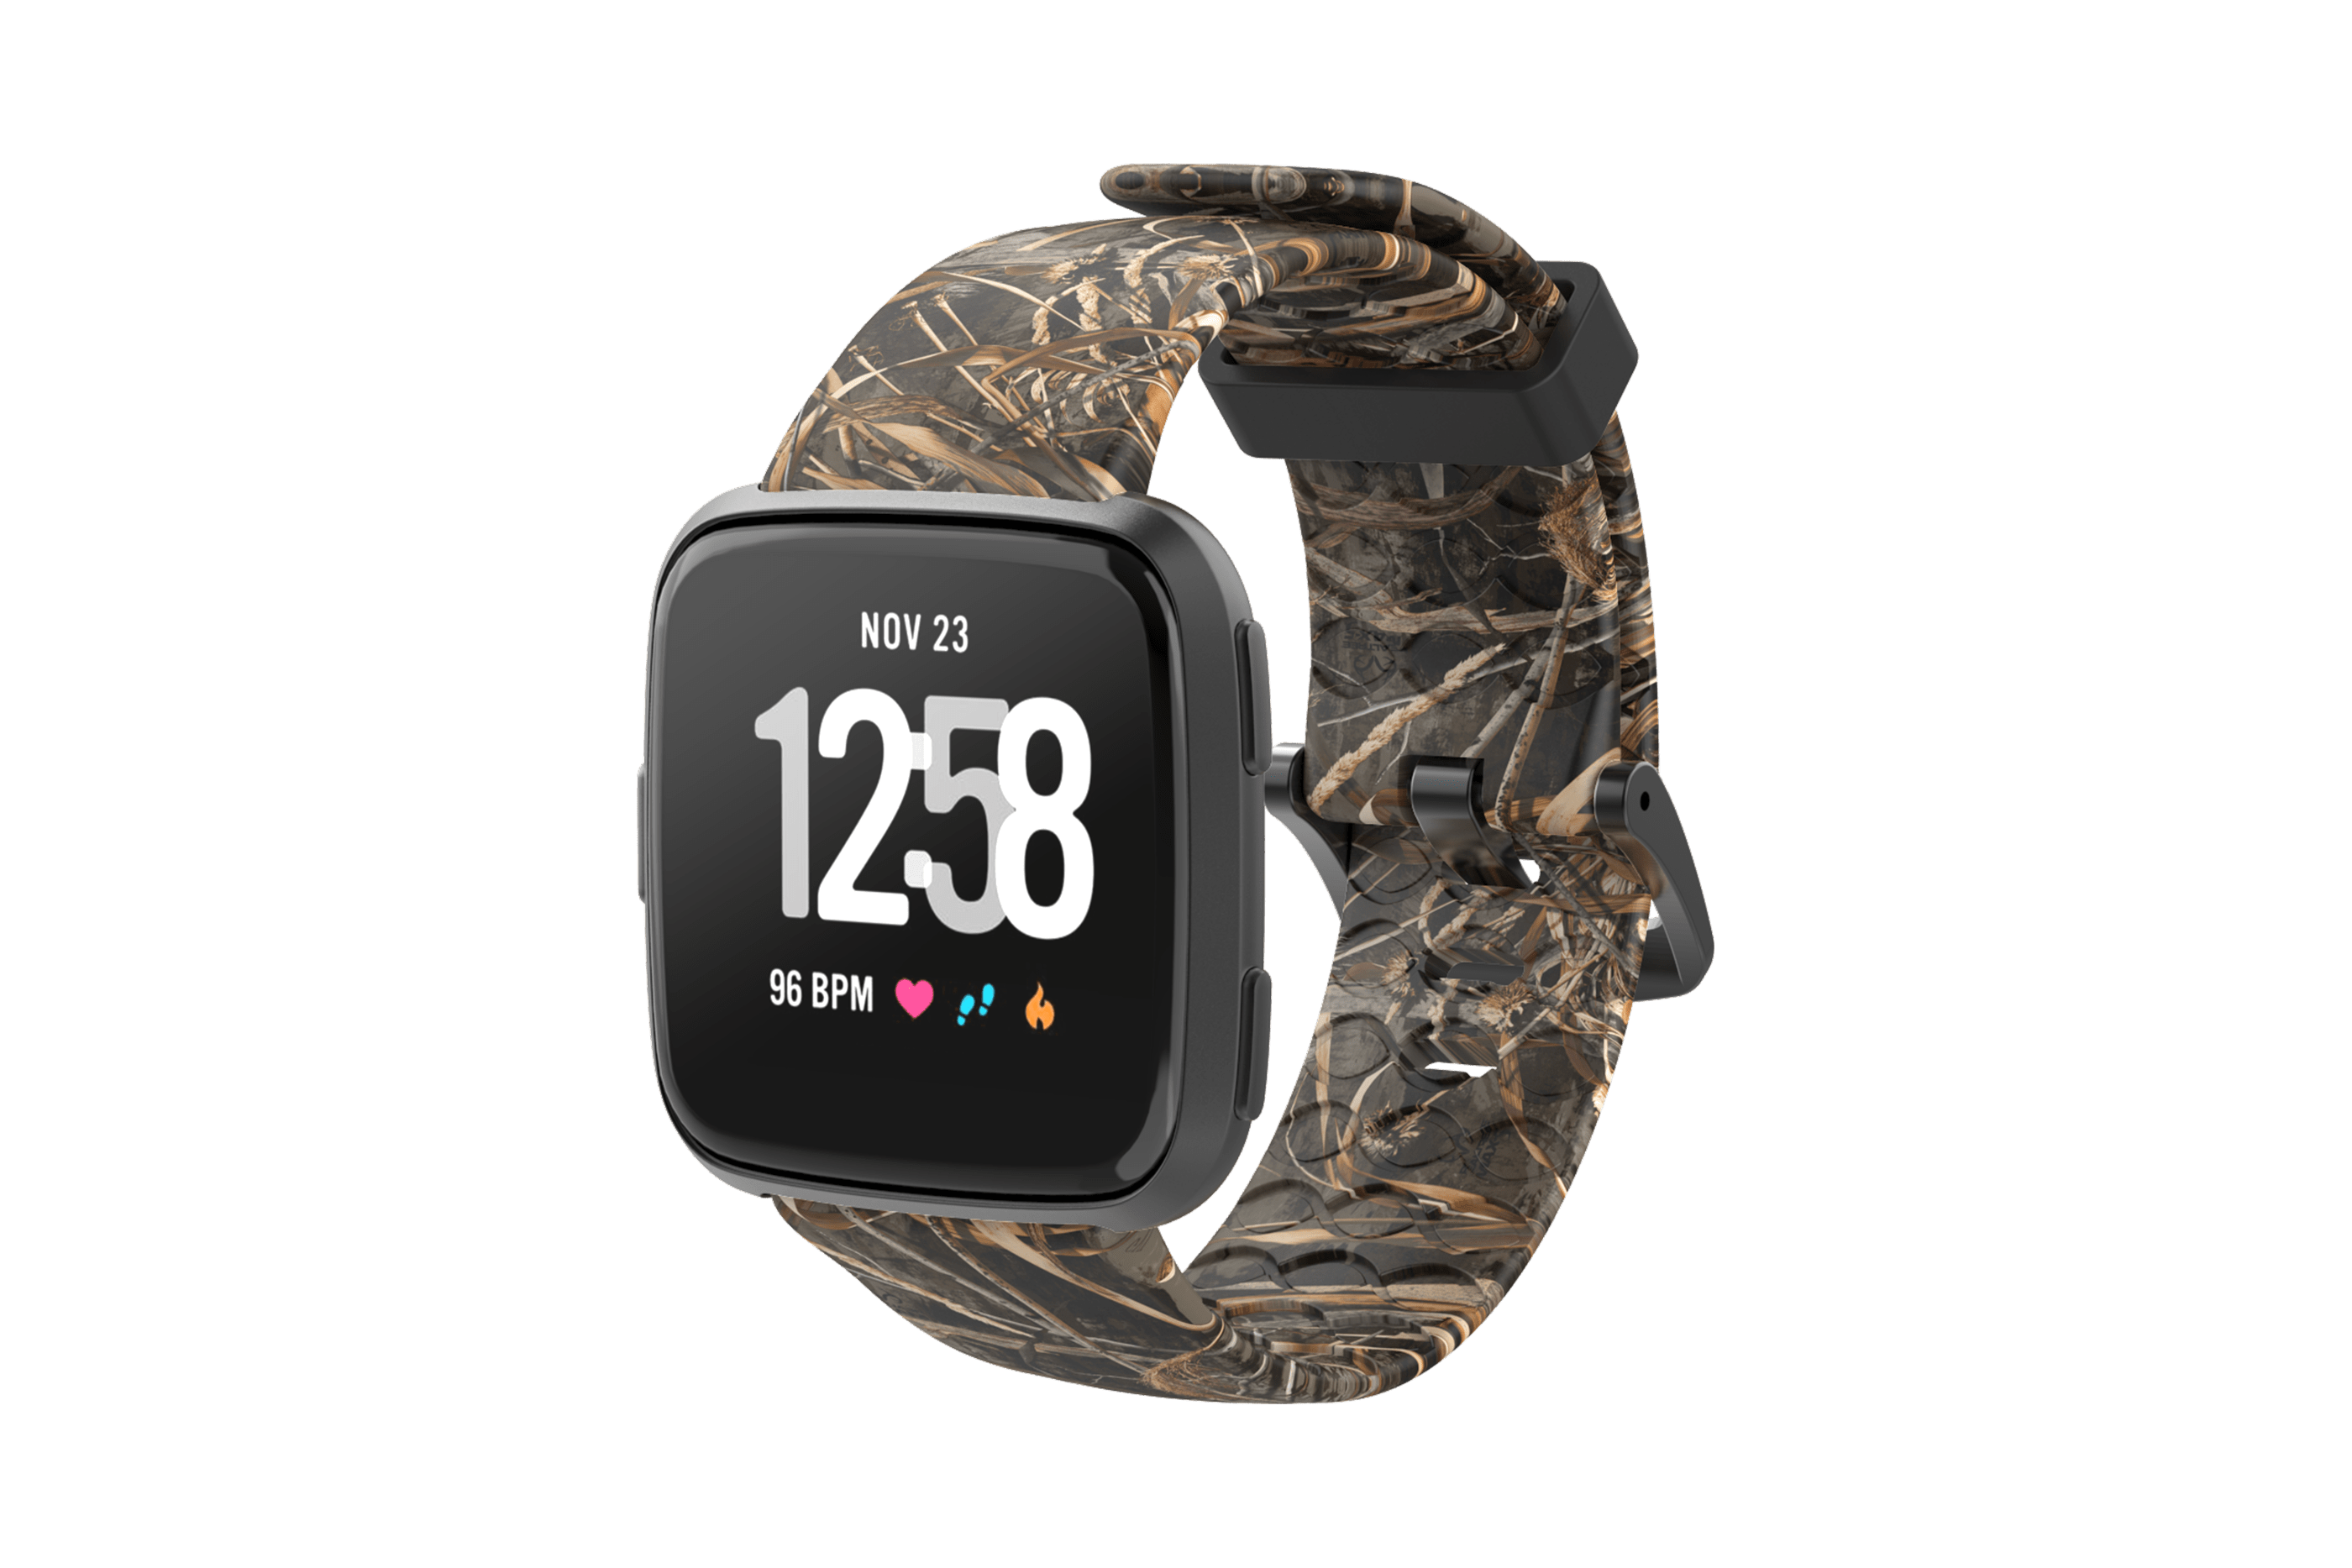 Realtree Max 5 Fitbit Versa Watch Band with gray hardware viewed front on